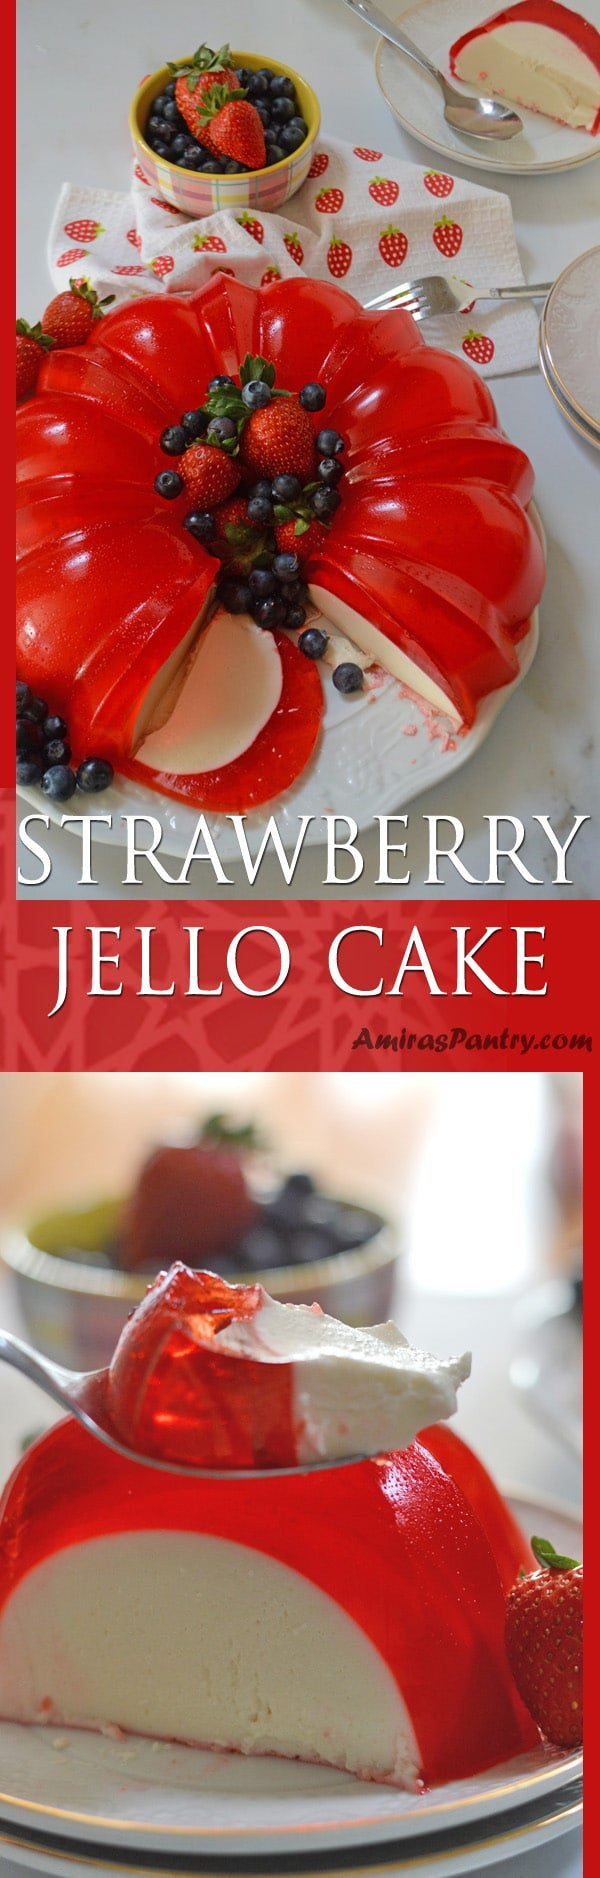 A luscious cream cheese sweet gelatin layer hugged by a strawberry jello and topped with fruits. A delicious no bake easy dessert that has the wow factor you need.#jello #valentinesday #strawberry #mothersday